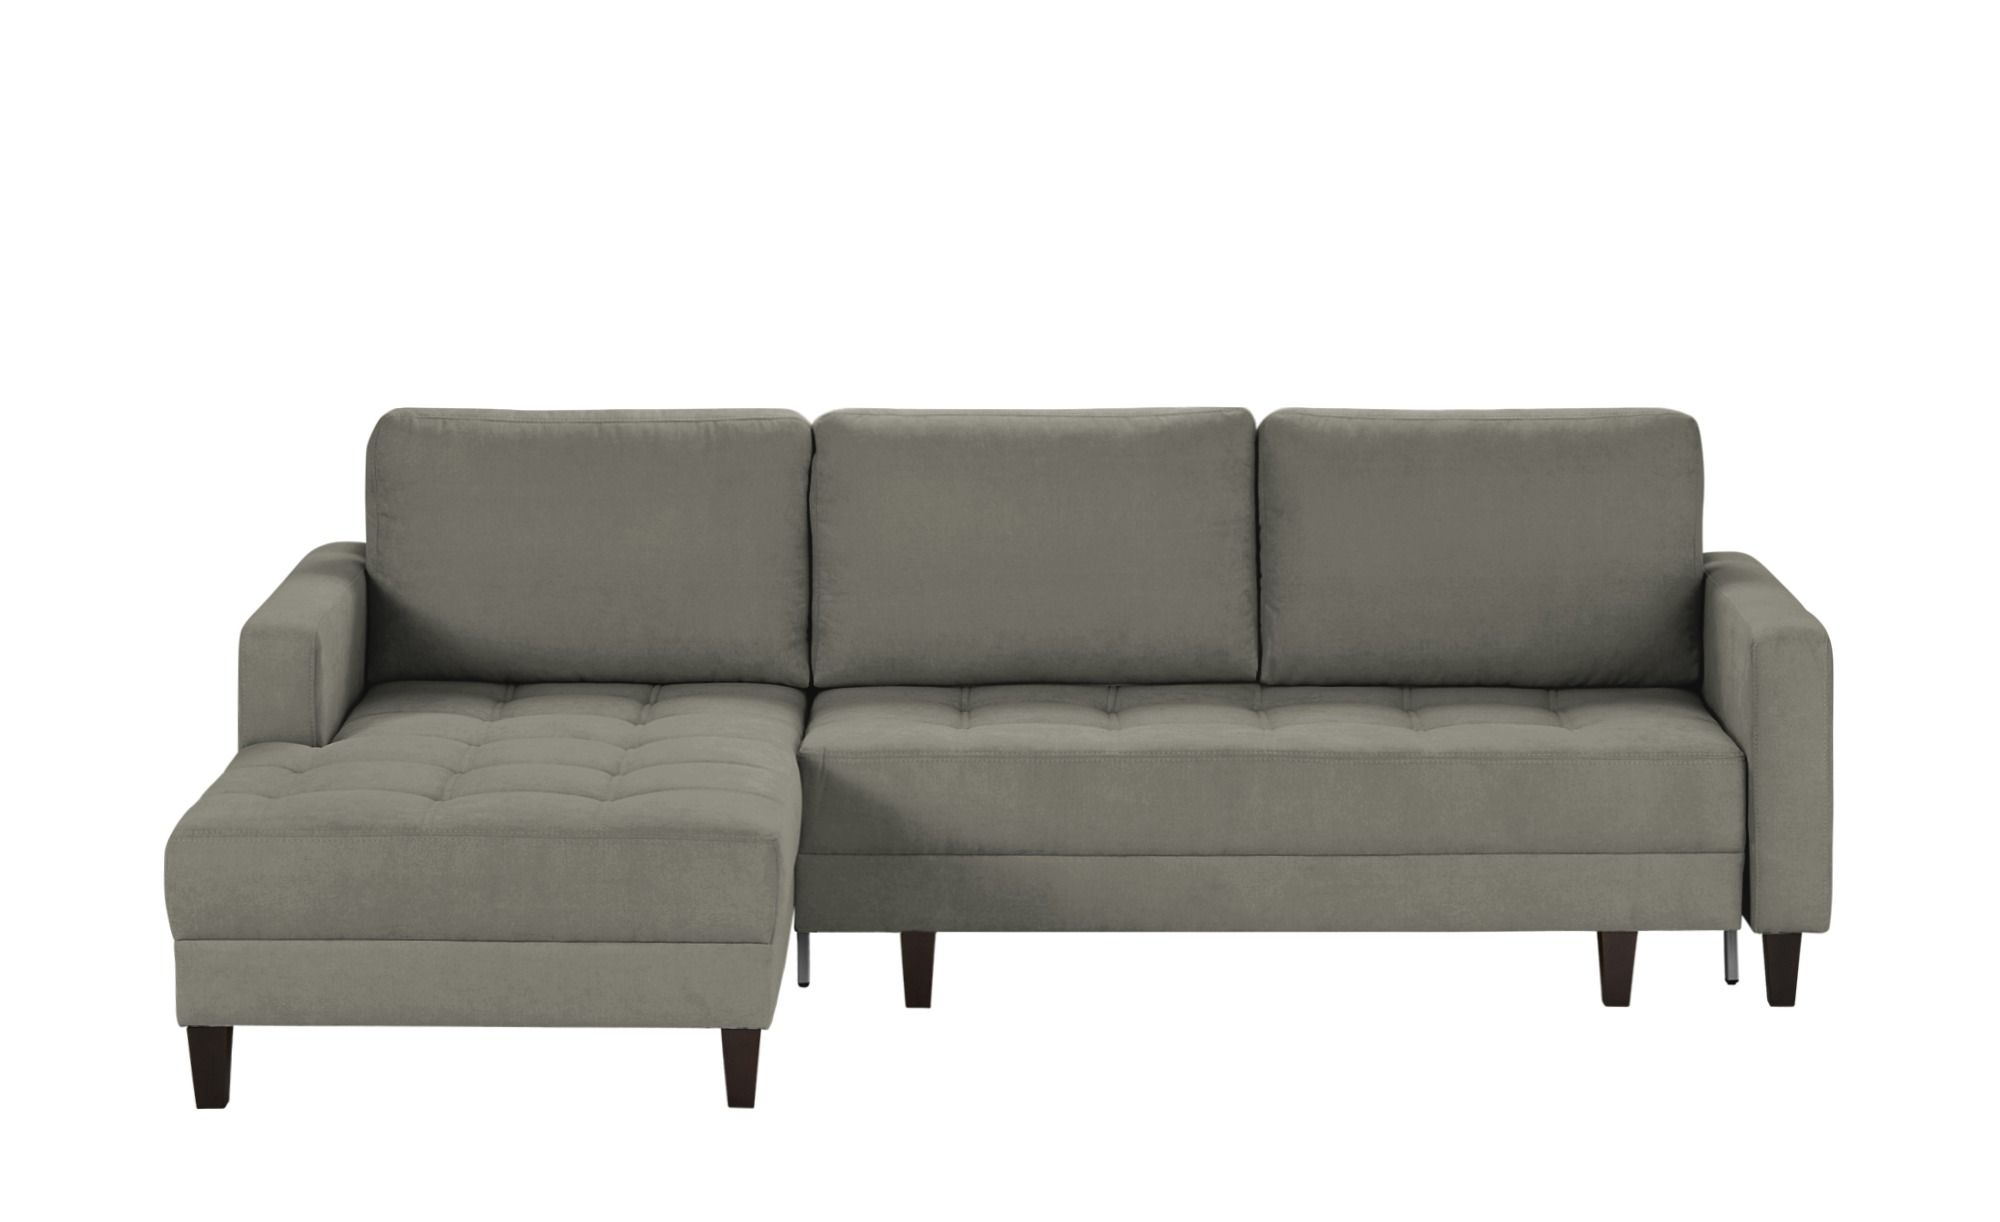 Smart Ecksofa Geradine Gefunden Bei Mobel Hoffner Couch Sofa Couch Sectional Couch